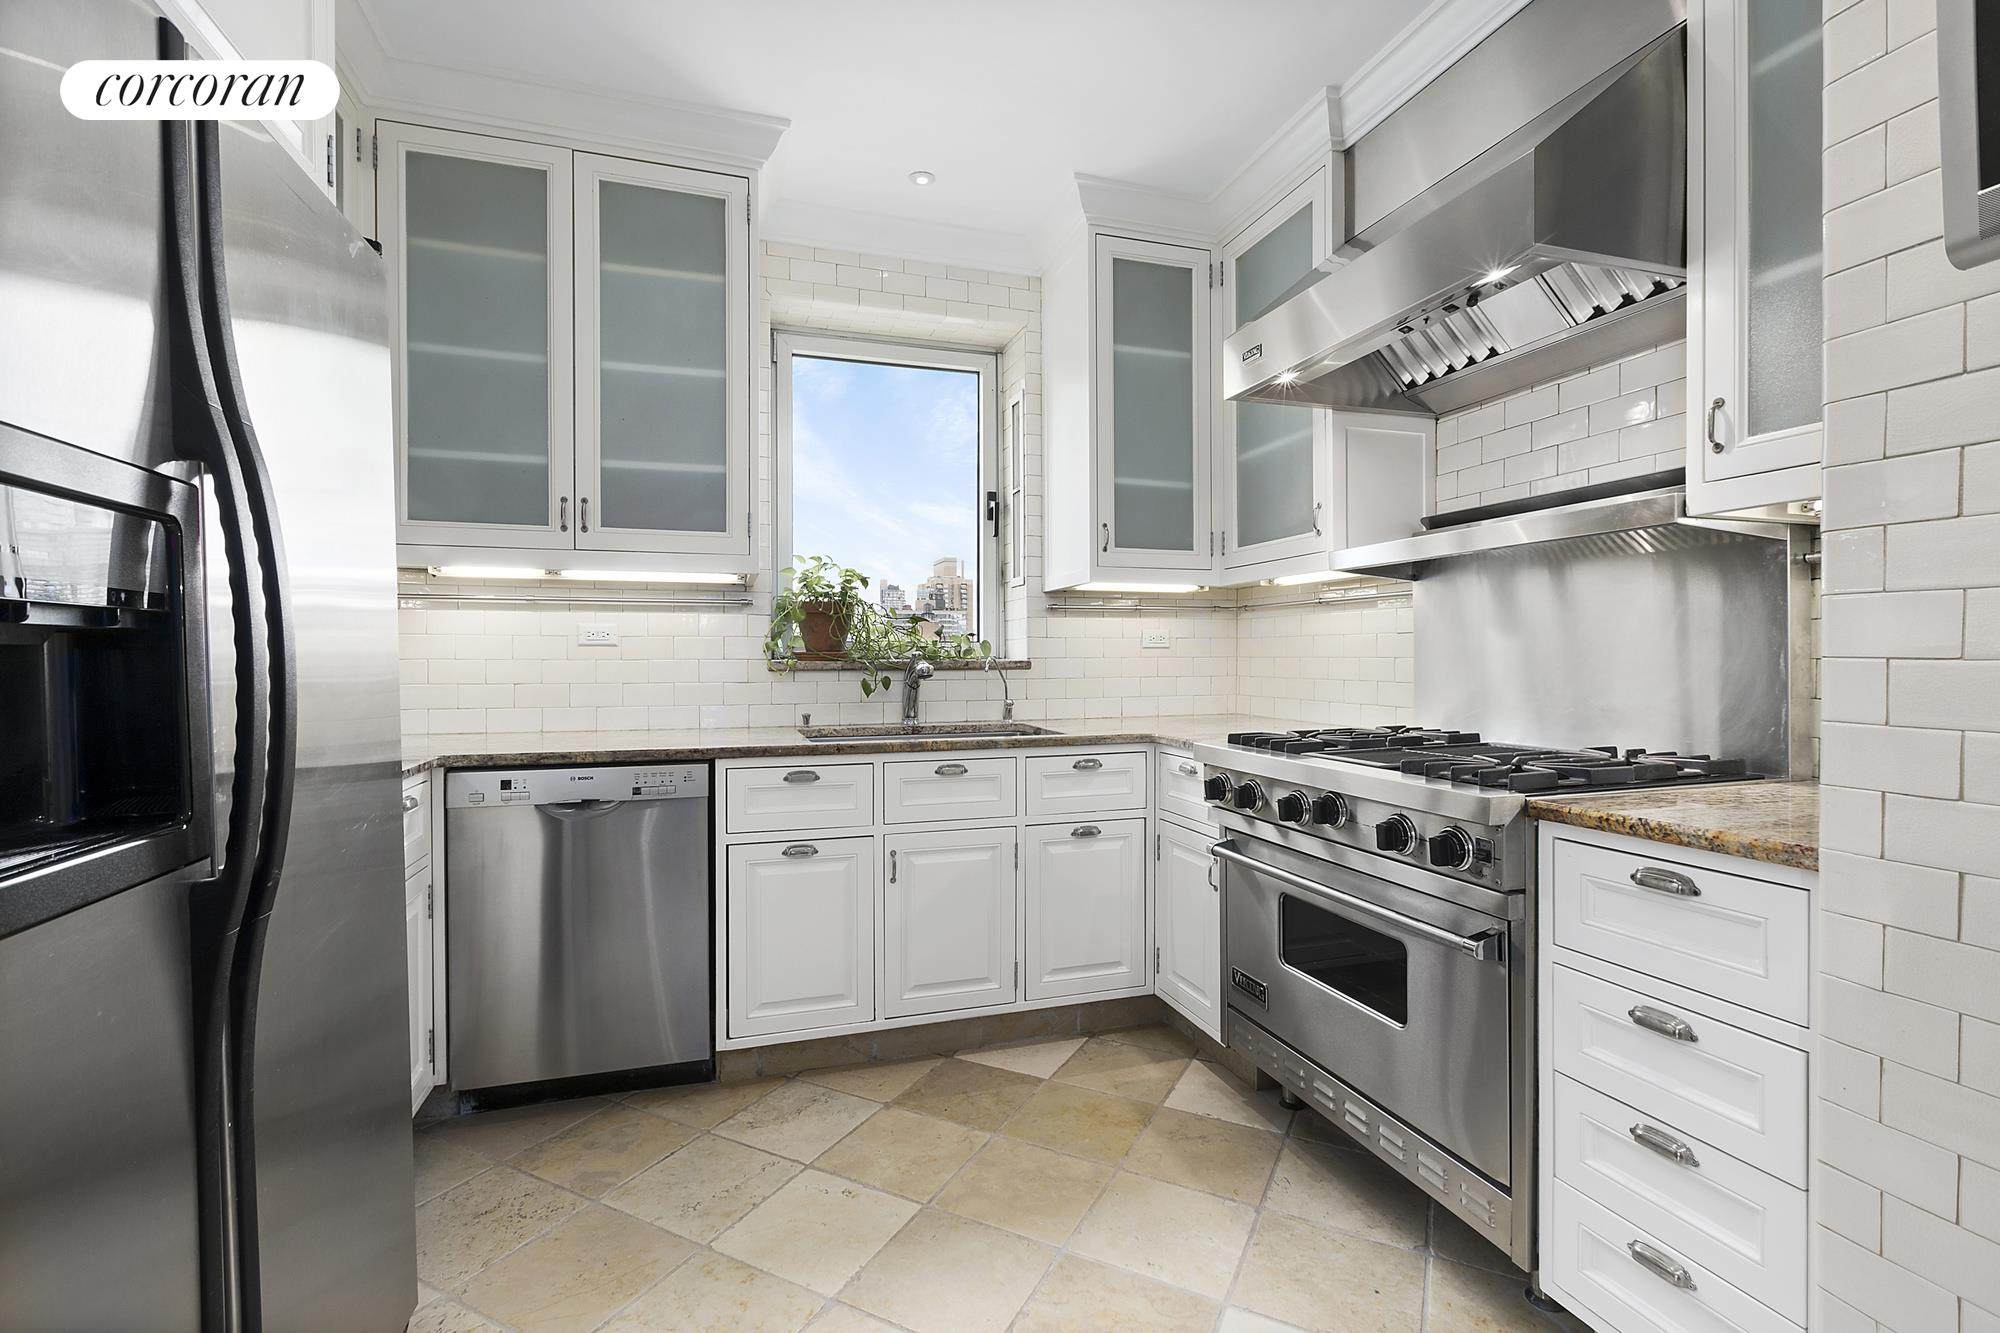 Corcoran, 201 East 80th Street, Apt. 15A, Upper East Side Real ...